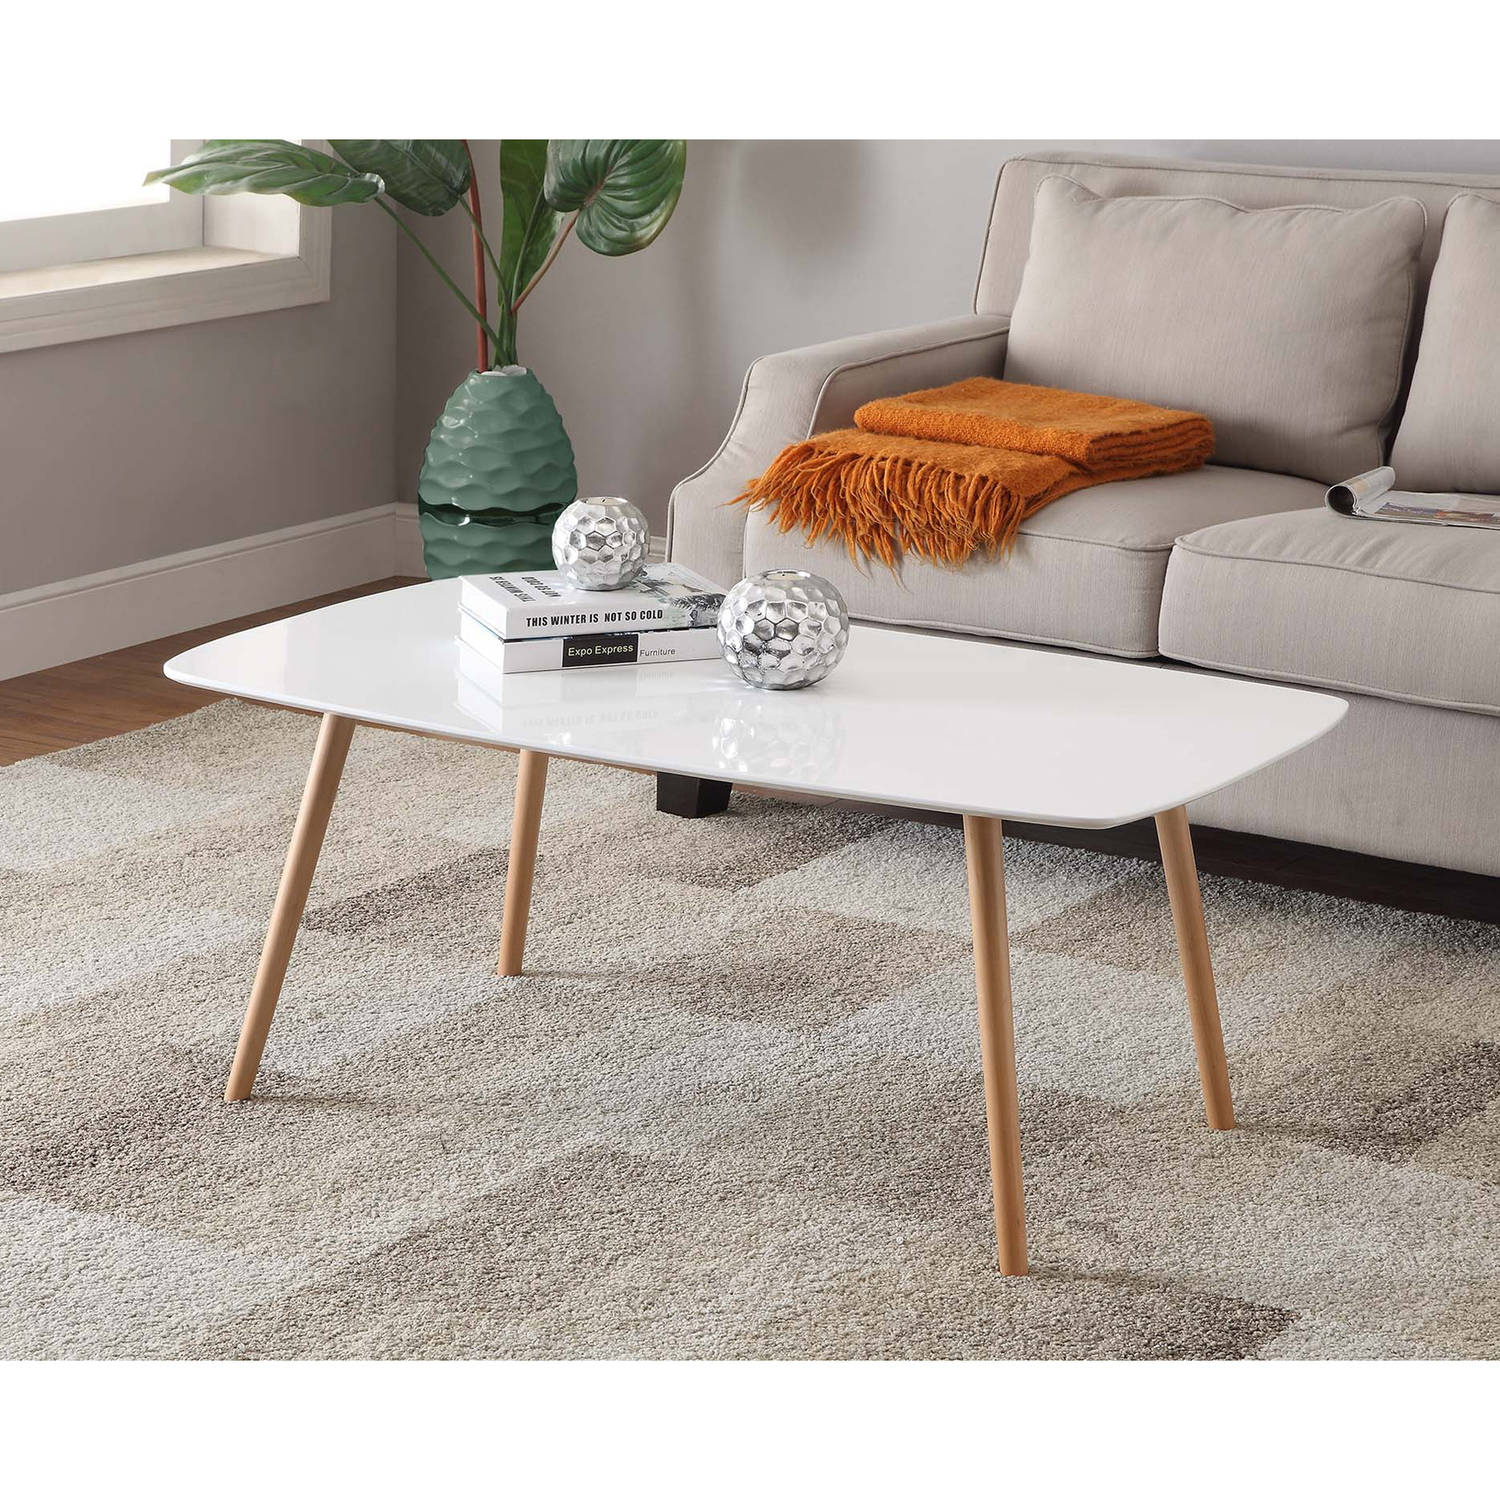 - Convenience Concepts No Tools Oslo Coffee Table, Multiple Colors